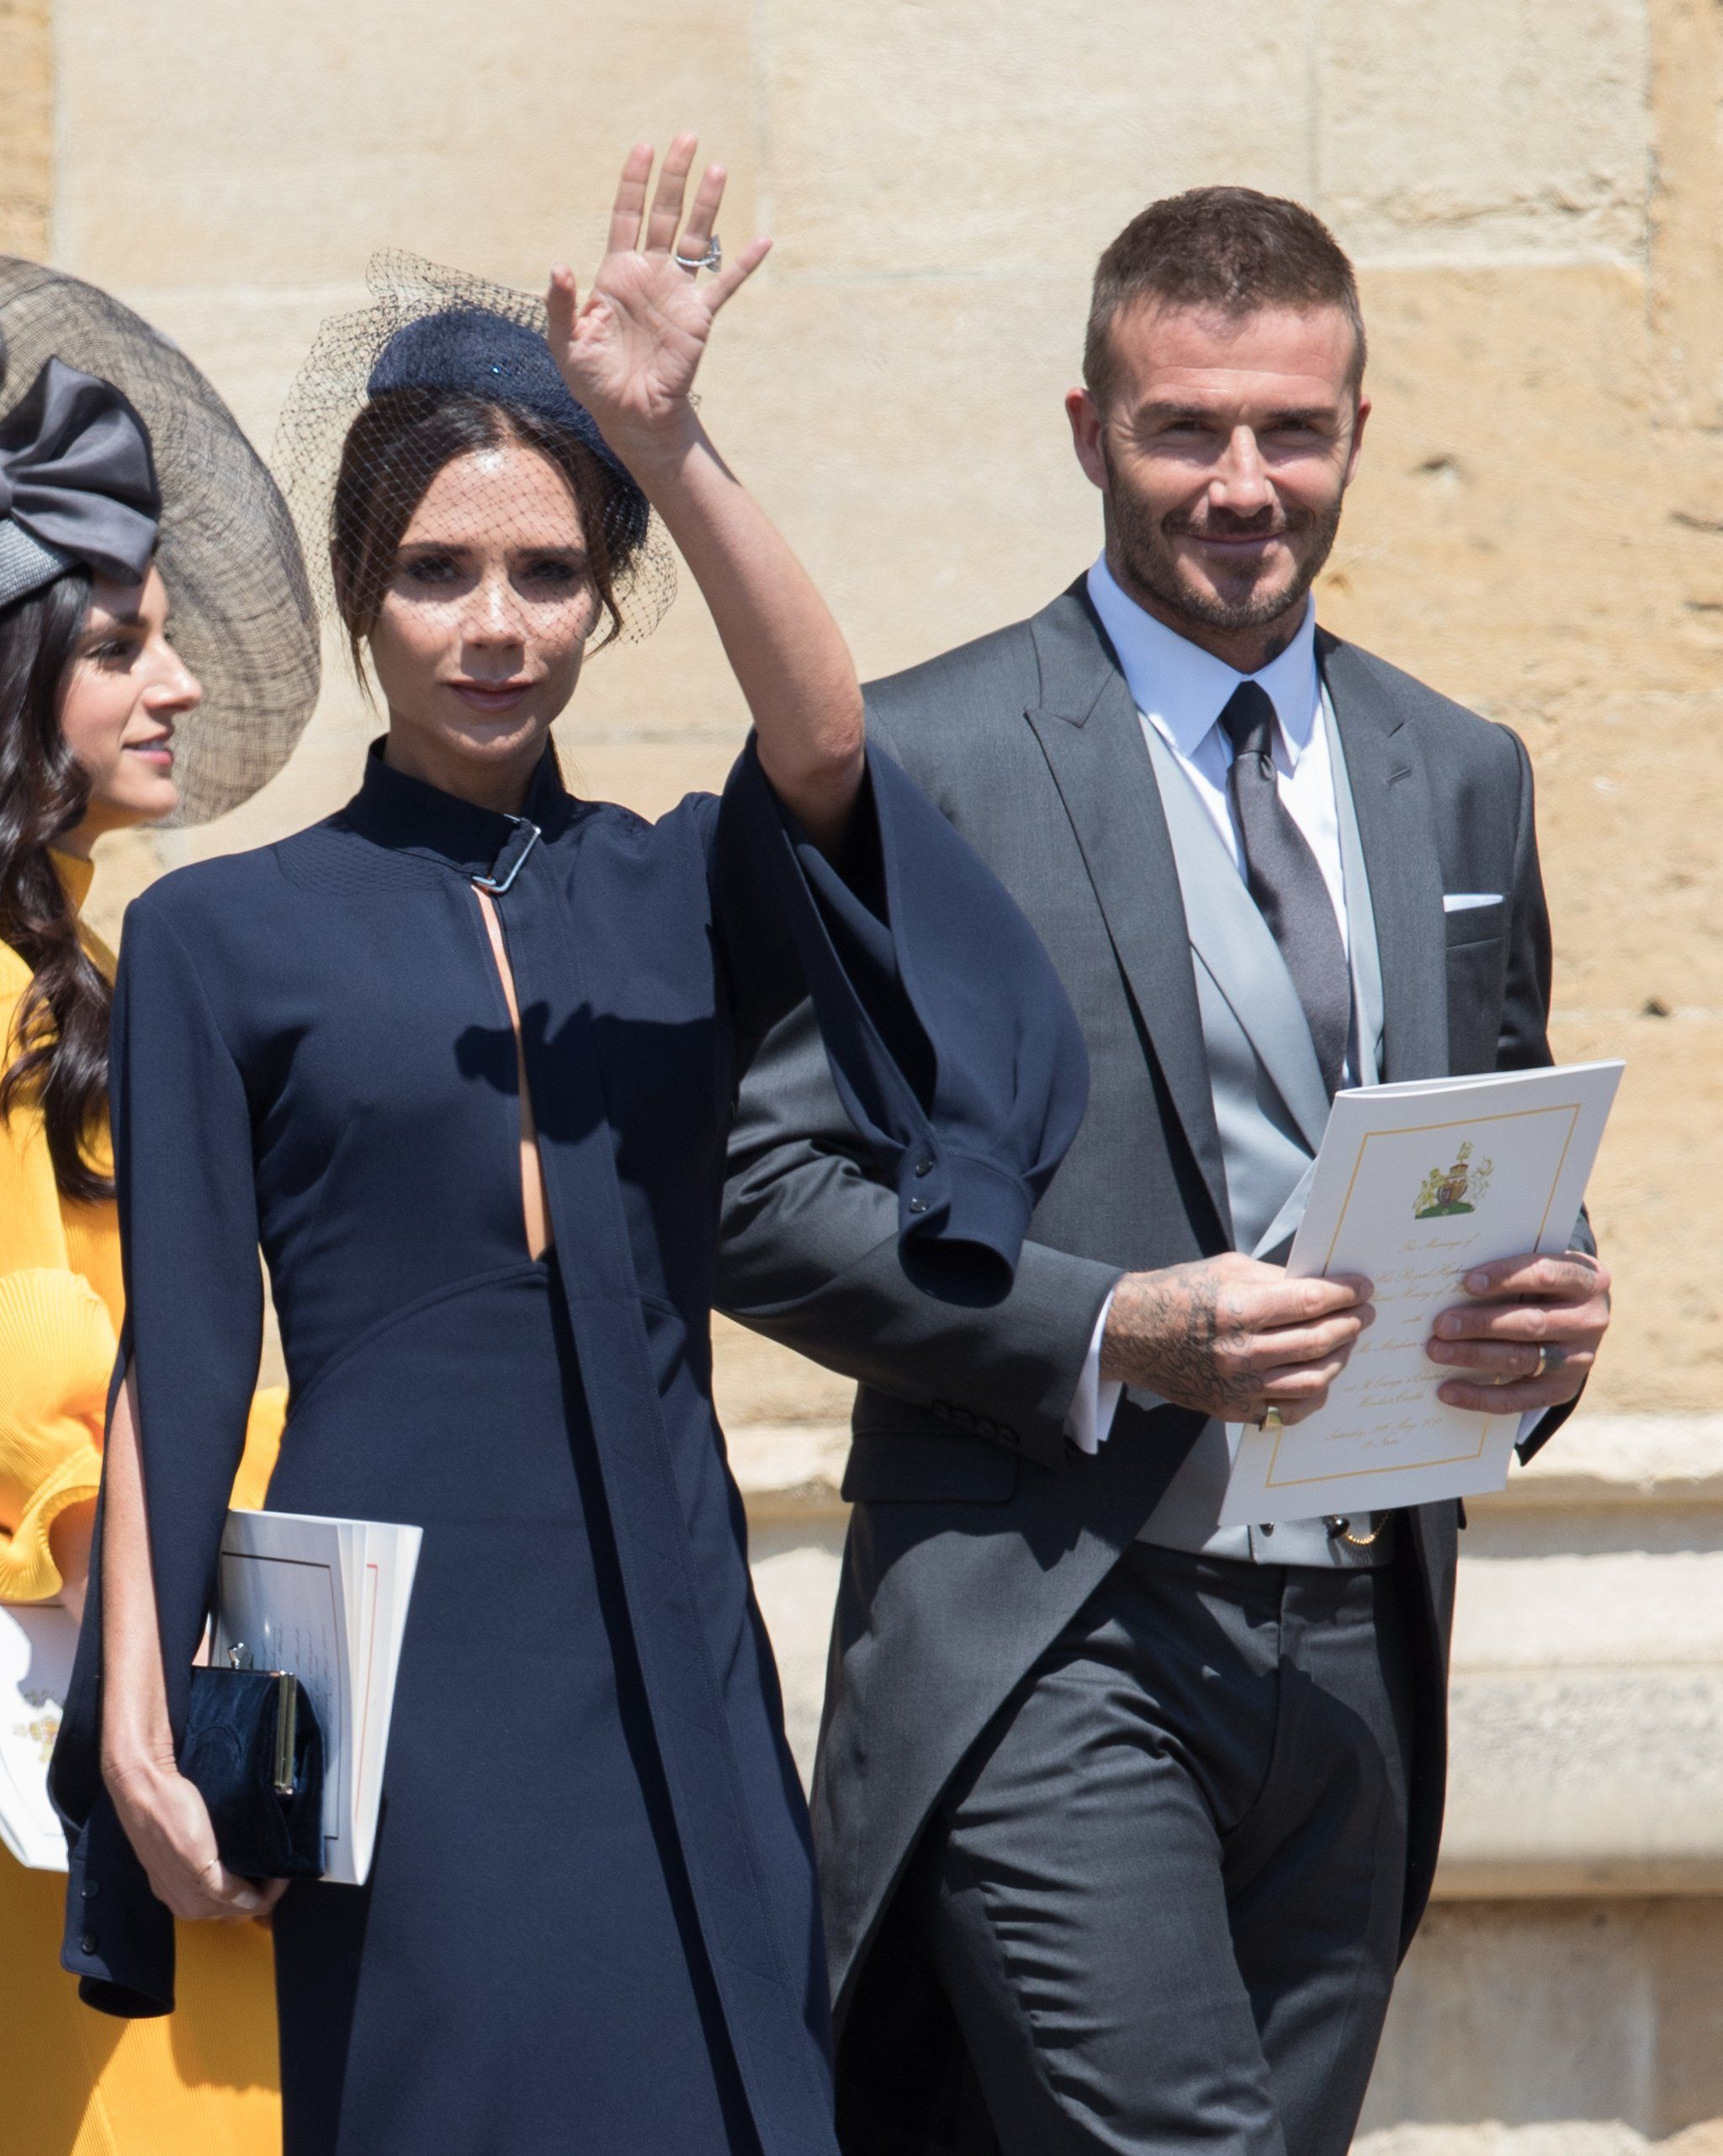 Victoria Beckham S Royal Wedding Guest Outfits Follow This 1 Simple